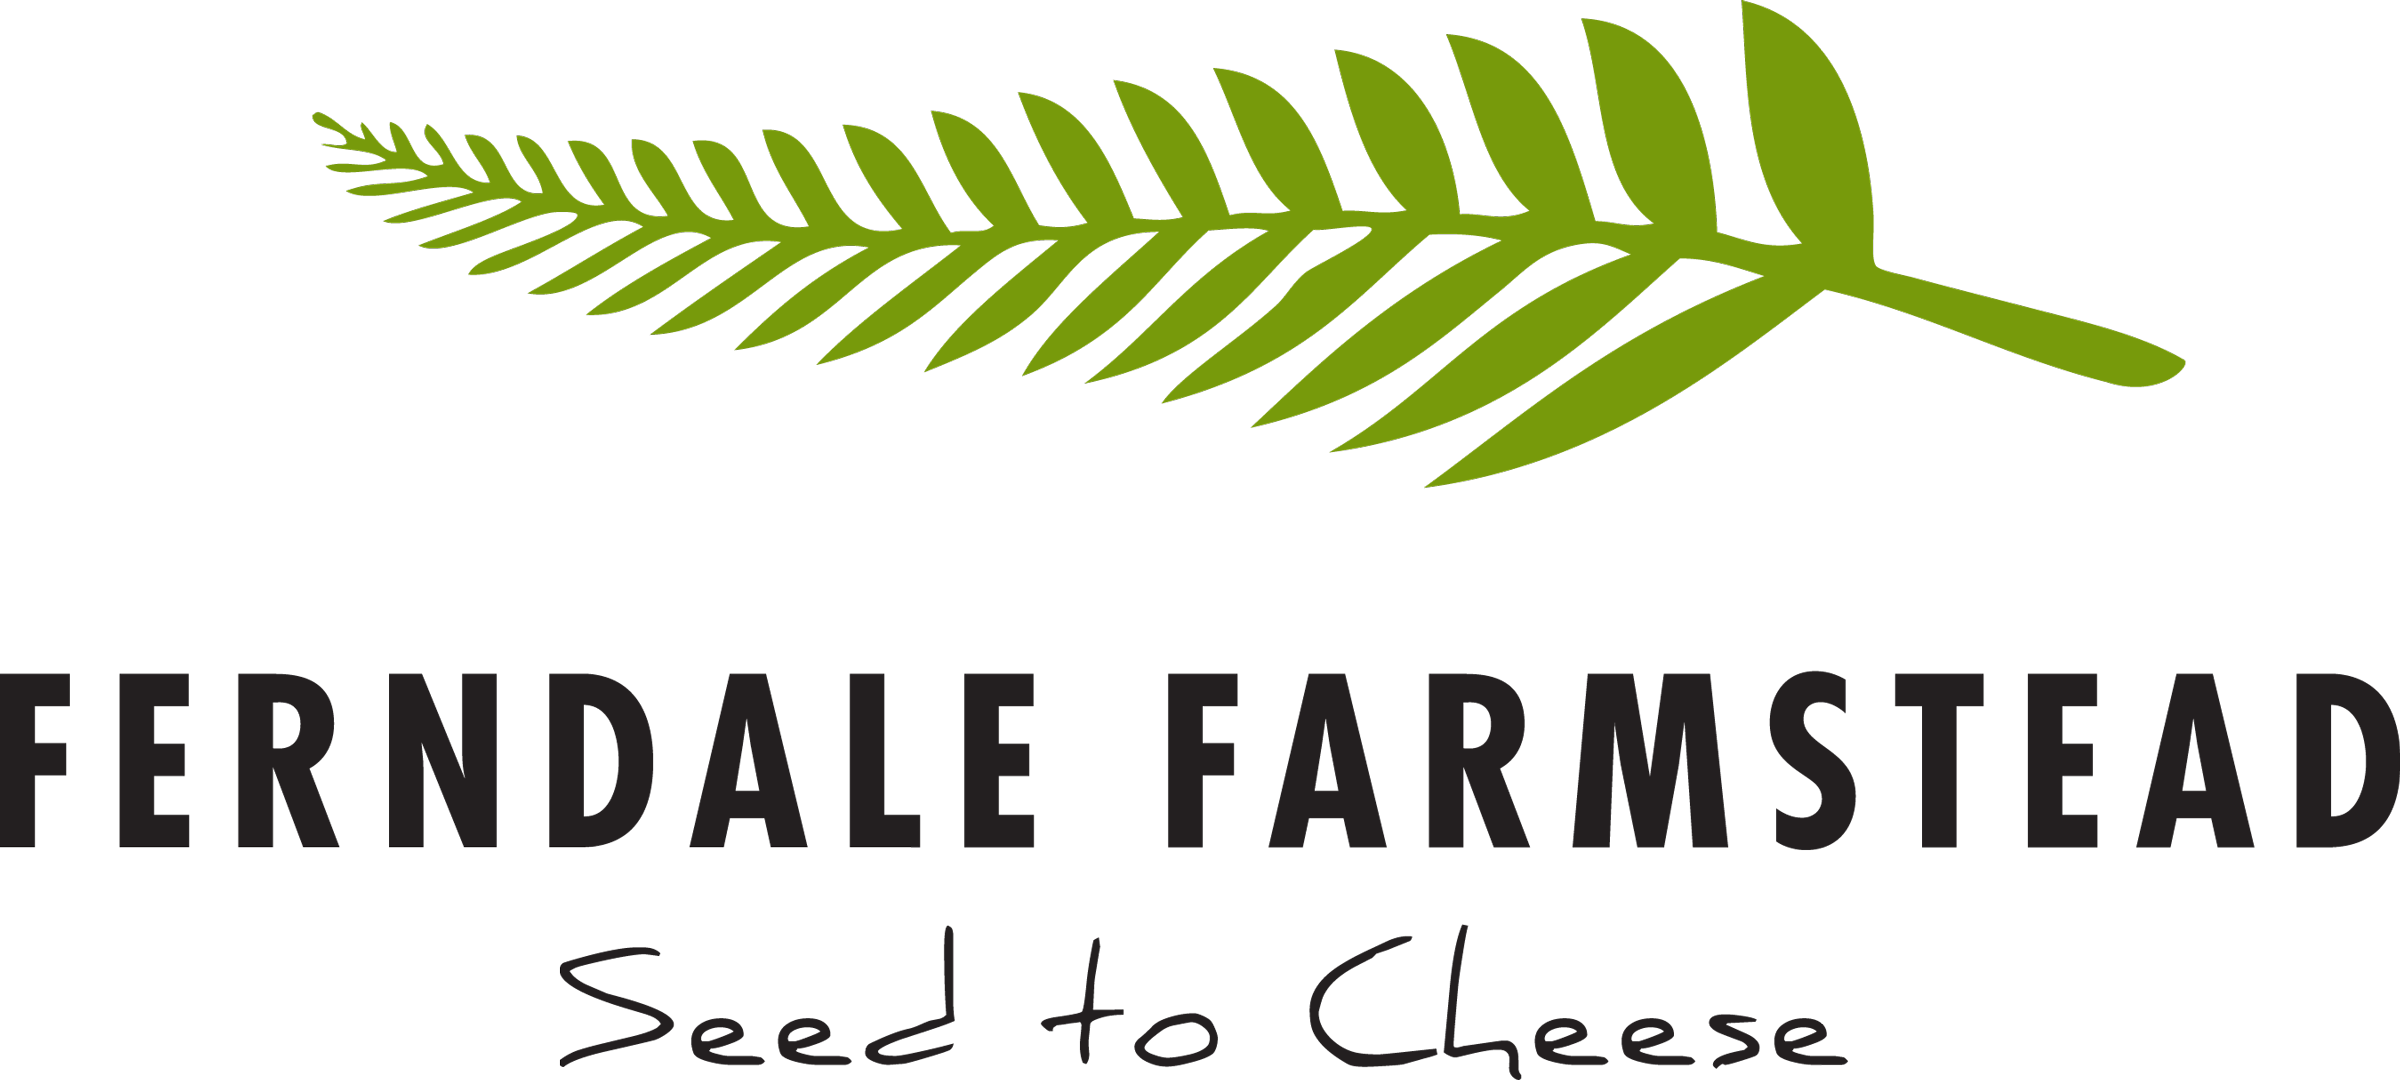 ffc-logo_seed-to-cheese-black (2).png